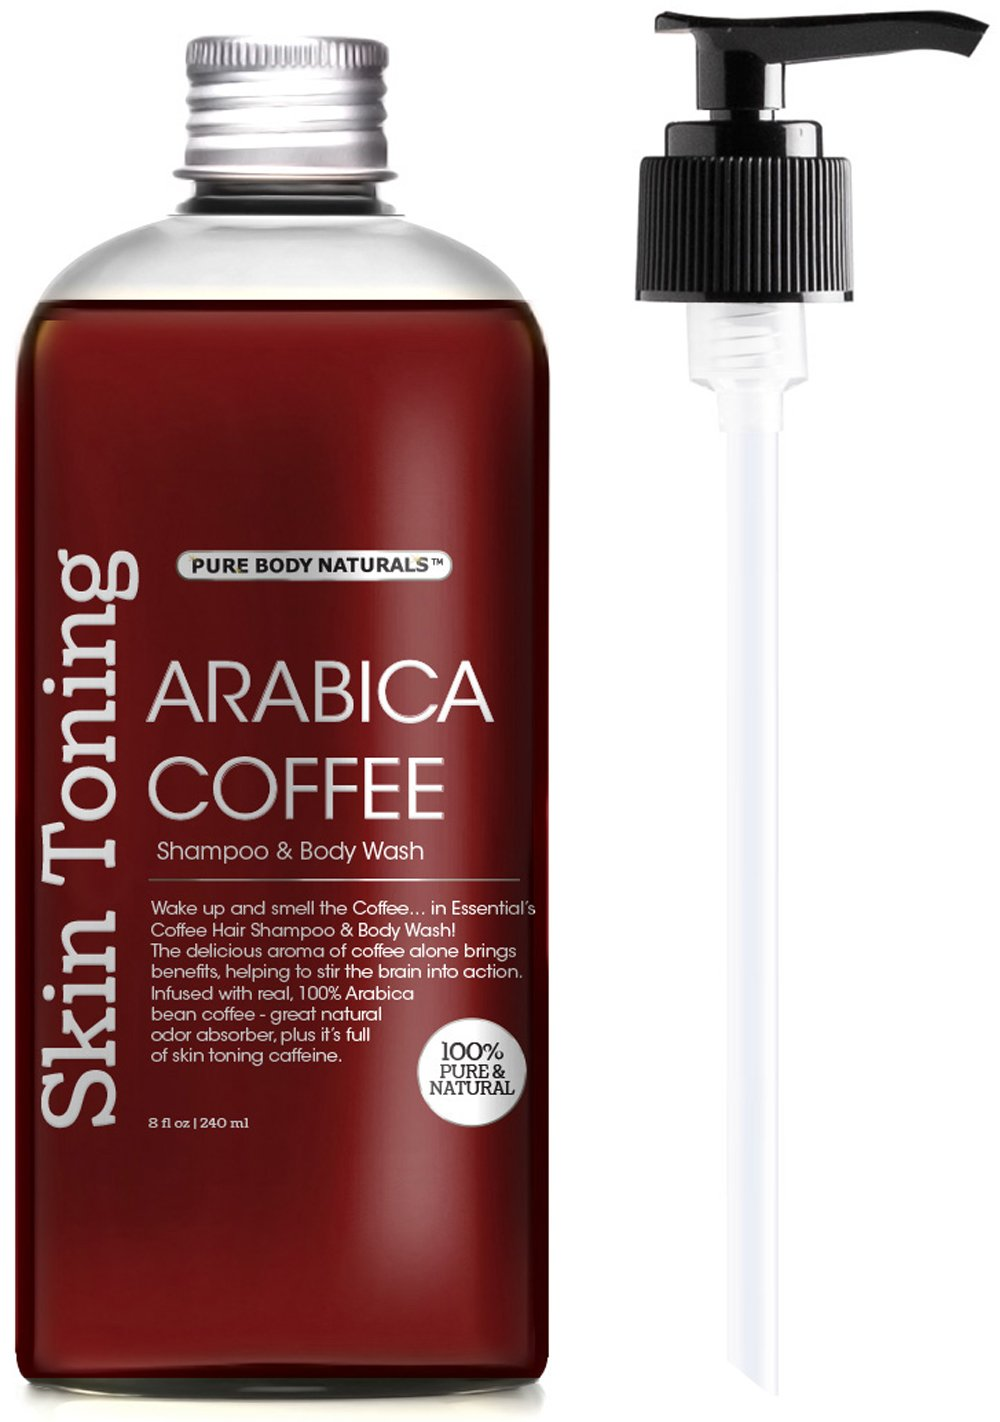 Arabica Coffee Shampoo and Body Wash for Hair Growth and Skin Toning by Pure Body Naturals, 8 Ounce